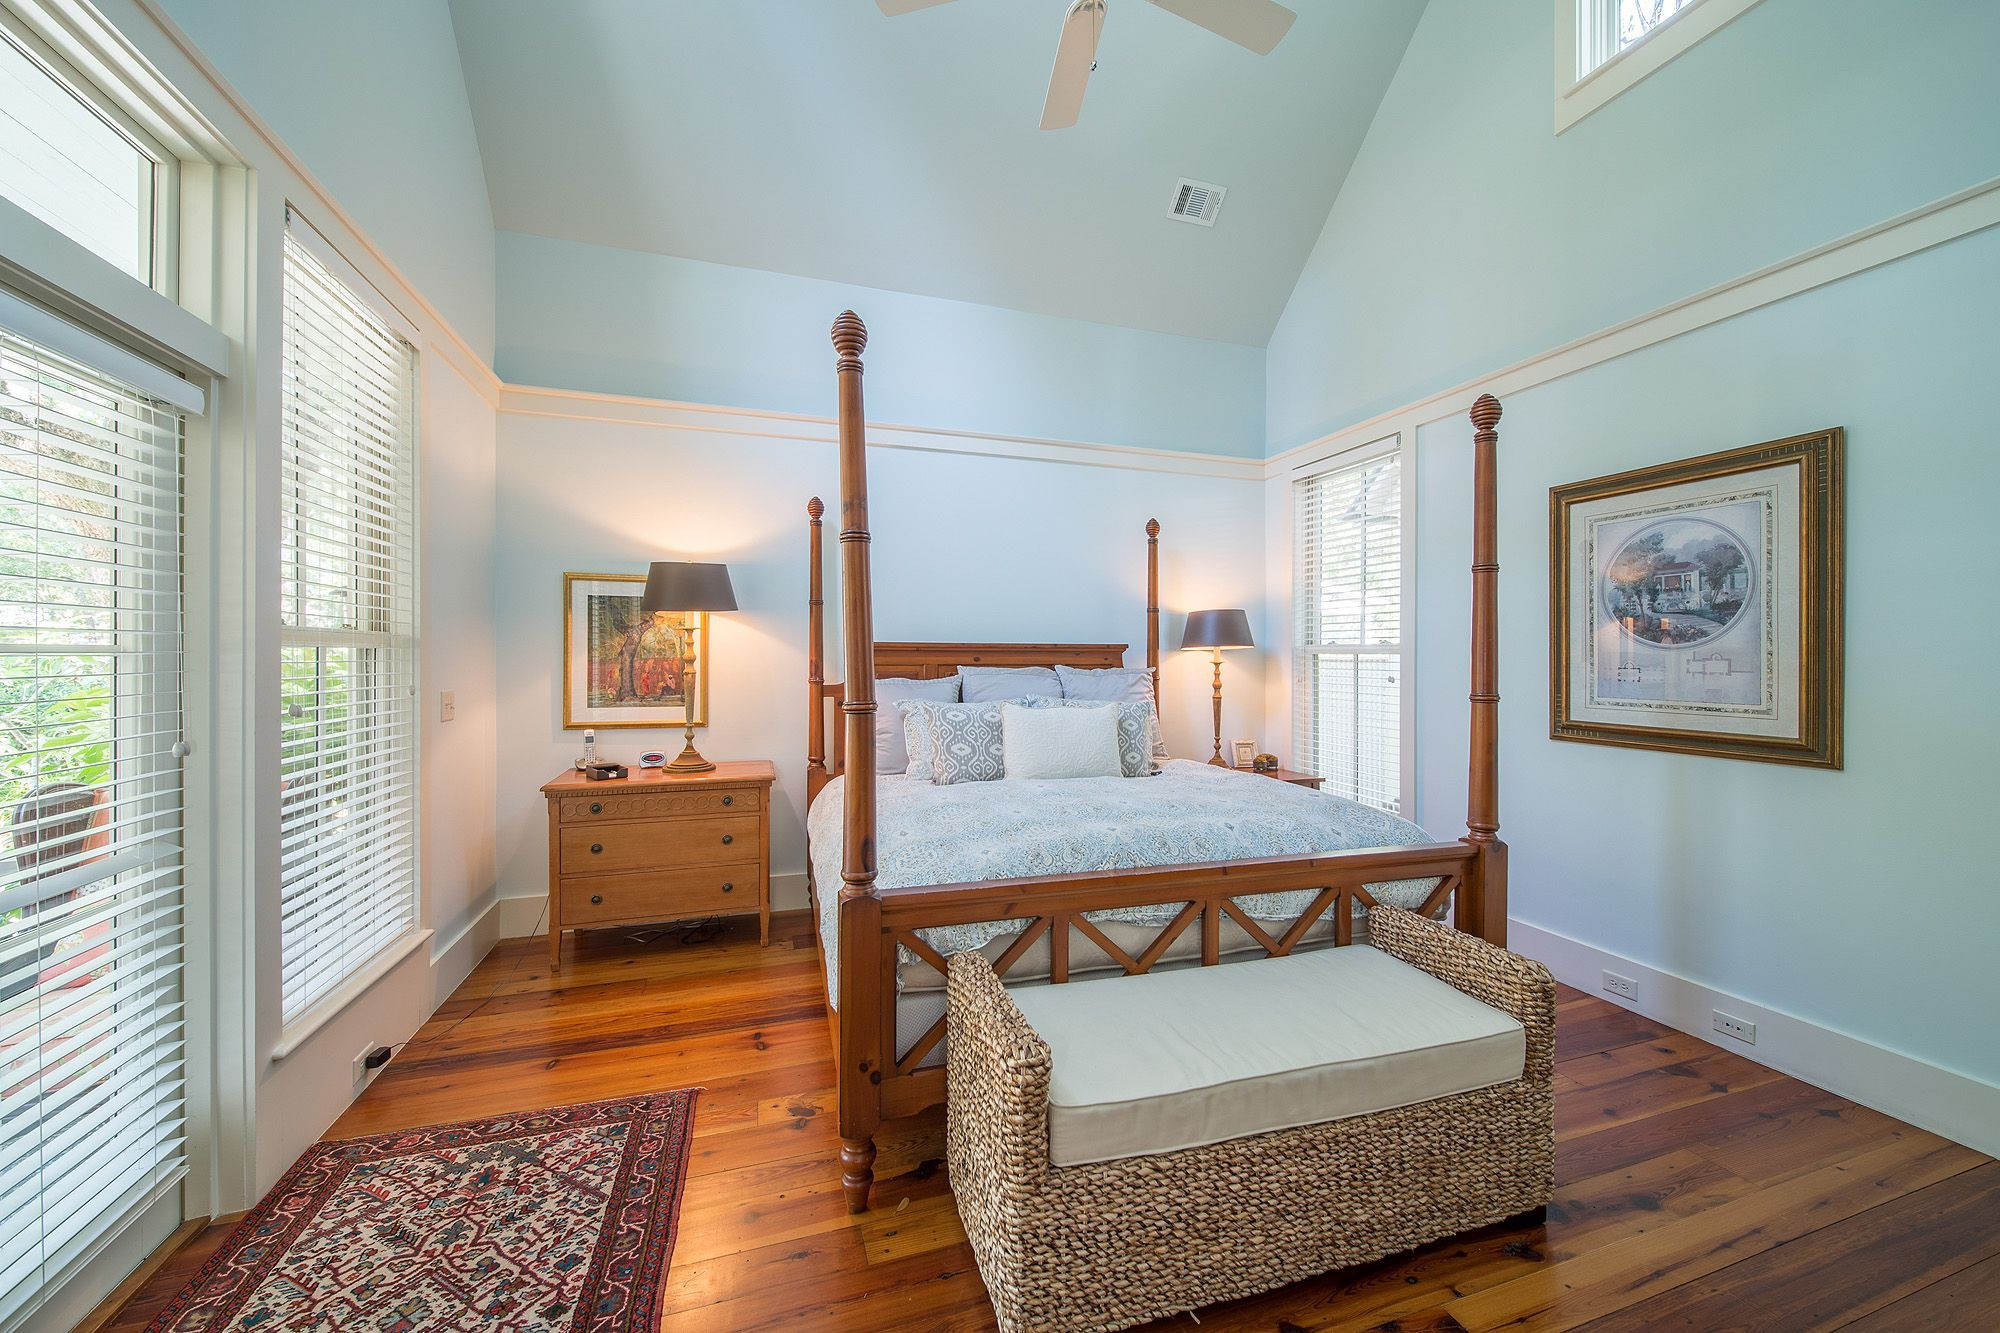 Guest Bedroom Inspiration - Southern Style Interior Design - Bedroom